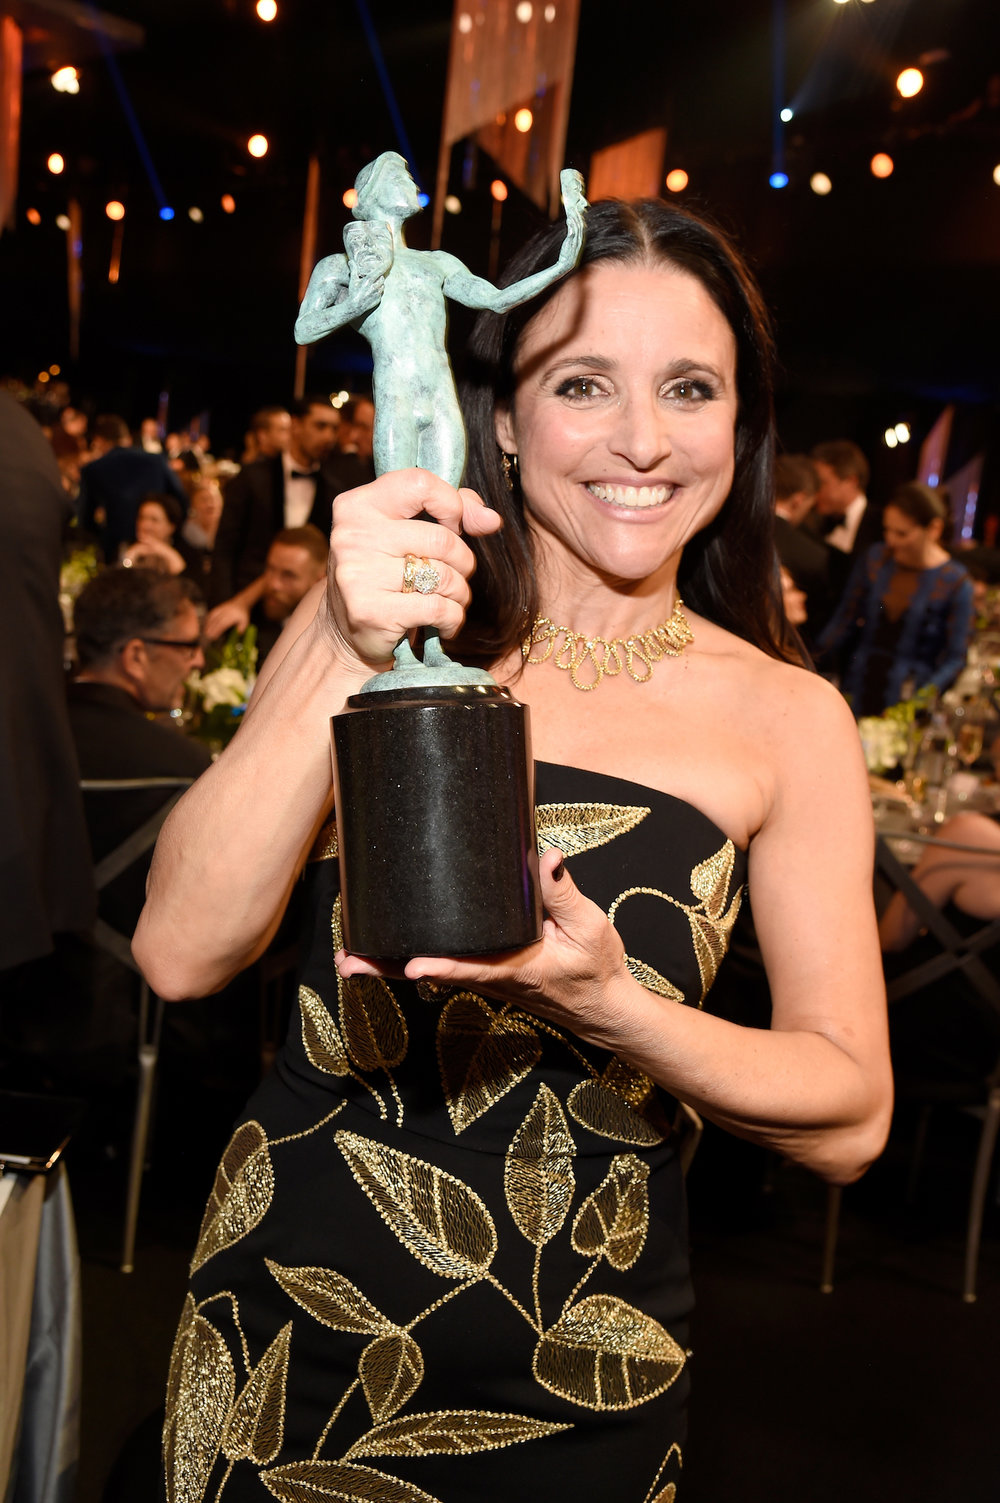 LOS ANGELES, CA - JANUARY 29:  Actor Julia Louis-Dreyfus poses with the Outstanding Performance by a Female Actor in a Comedy Series award for 'Veep' during The 23rd Annual Screen Actors Guild Awards at The Shrine Auditorium on January 29, 2017 in Los Angeles, California. 26592_011  (Photo by Kevin Mazur/Getty Images for TNT) *** Local Caption *** Julia Louis-Dreyfus